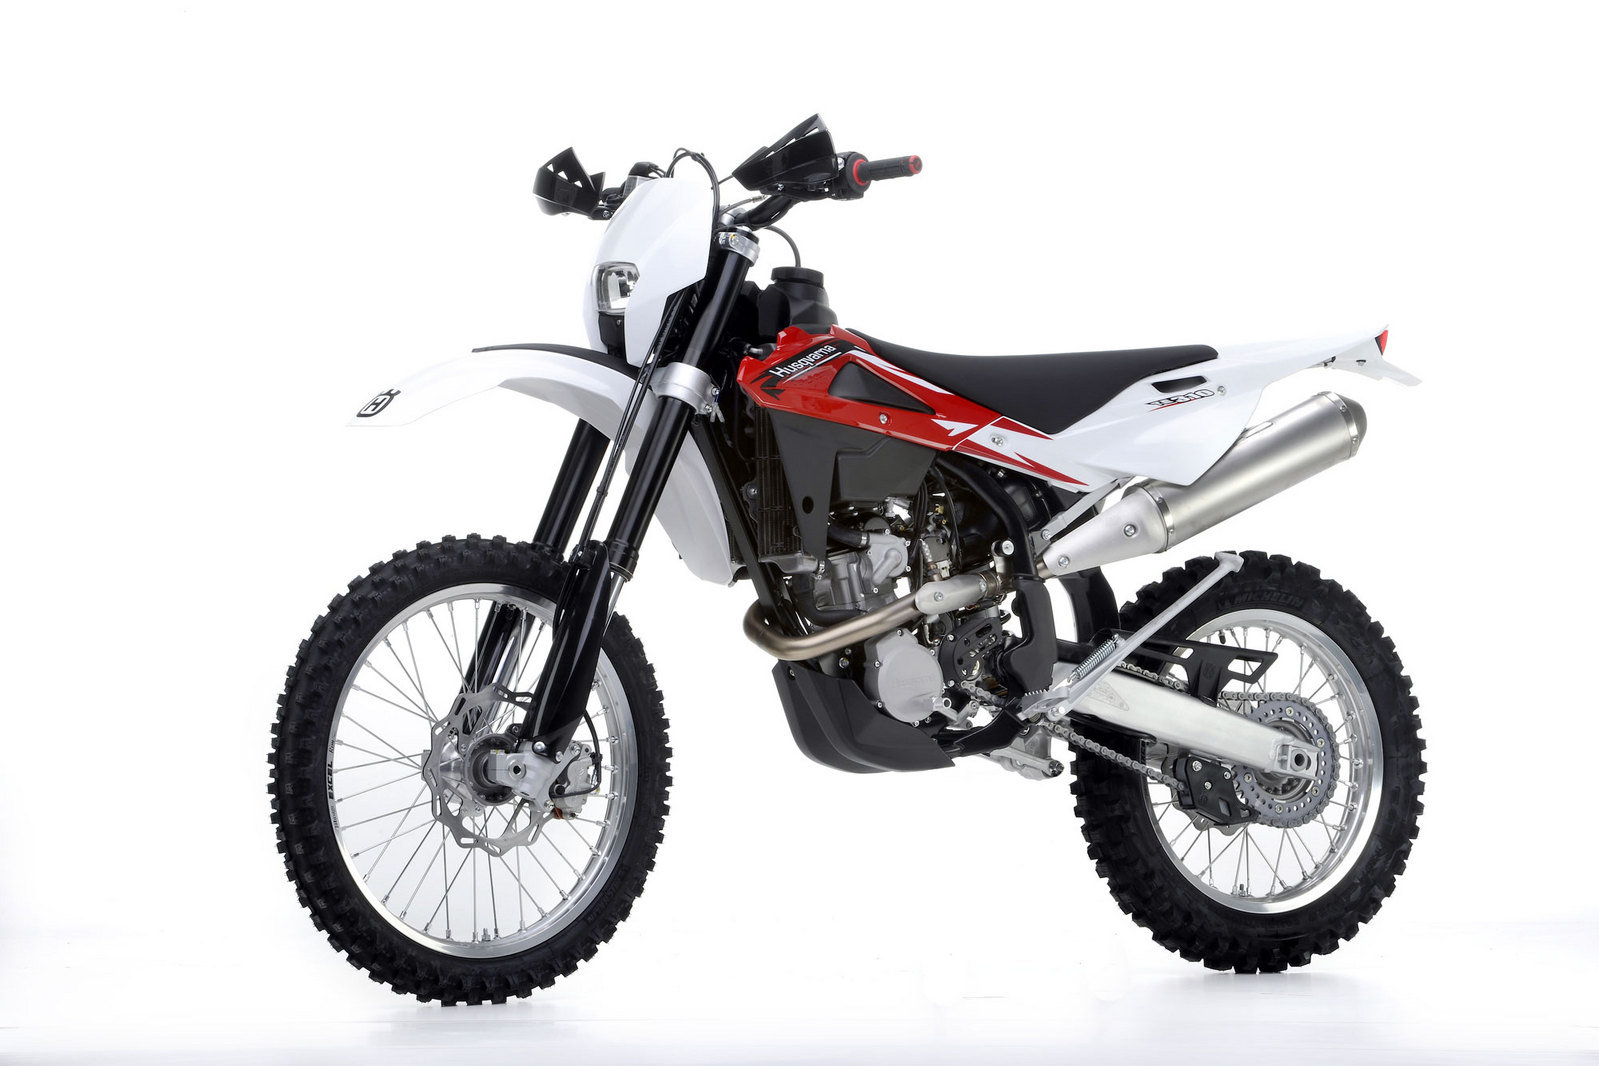 2013 husqvarna te 310 r picture 485596 motorcycle. Black Bedroom Furniture Sets. Home Design Ideas